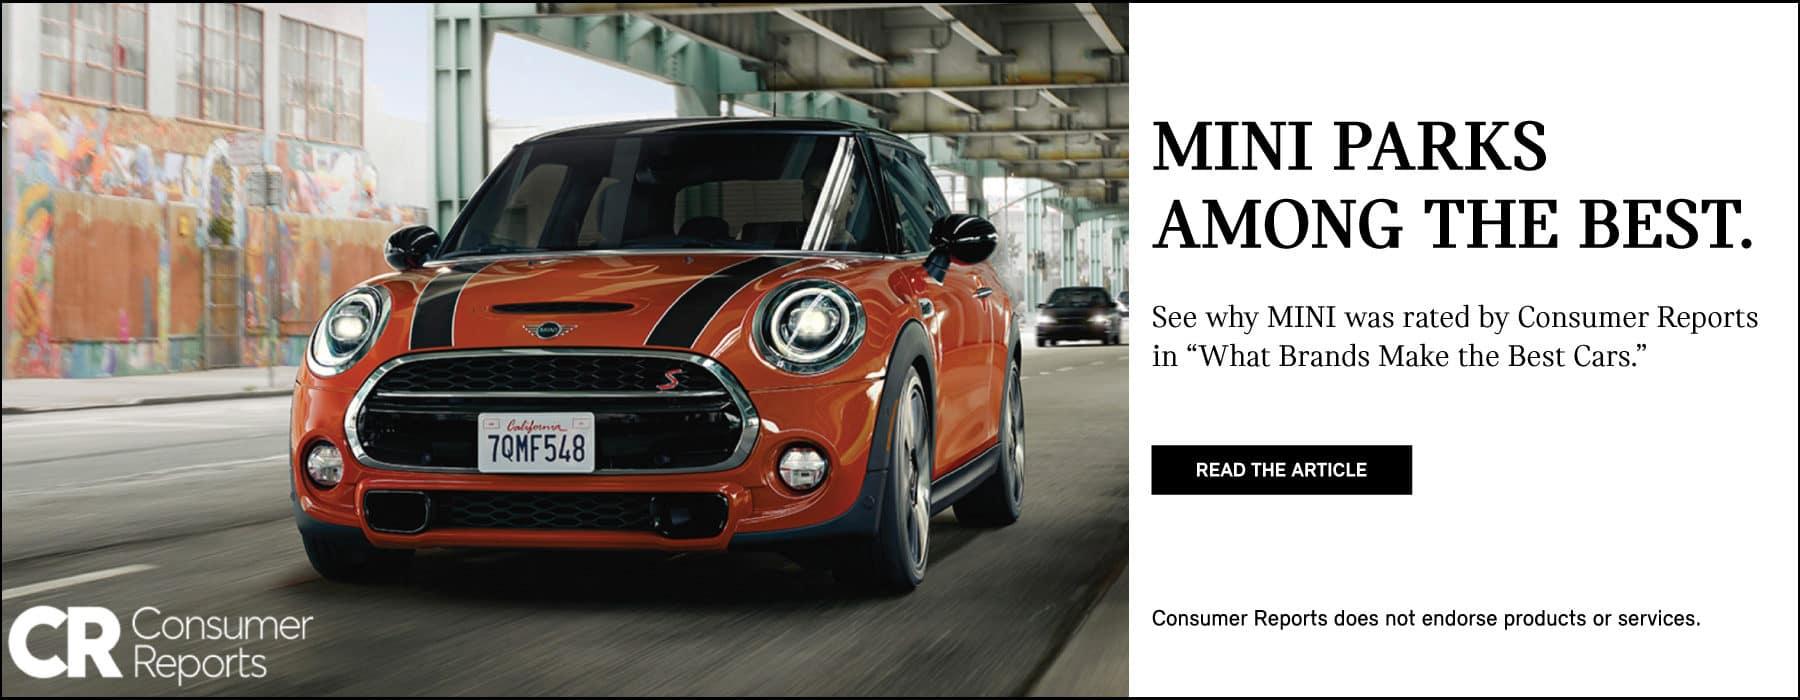 MINI PARKS AMONG THE BEST. See why MINI was rated by Consumer Reports in